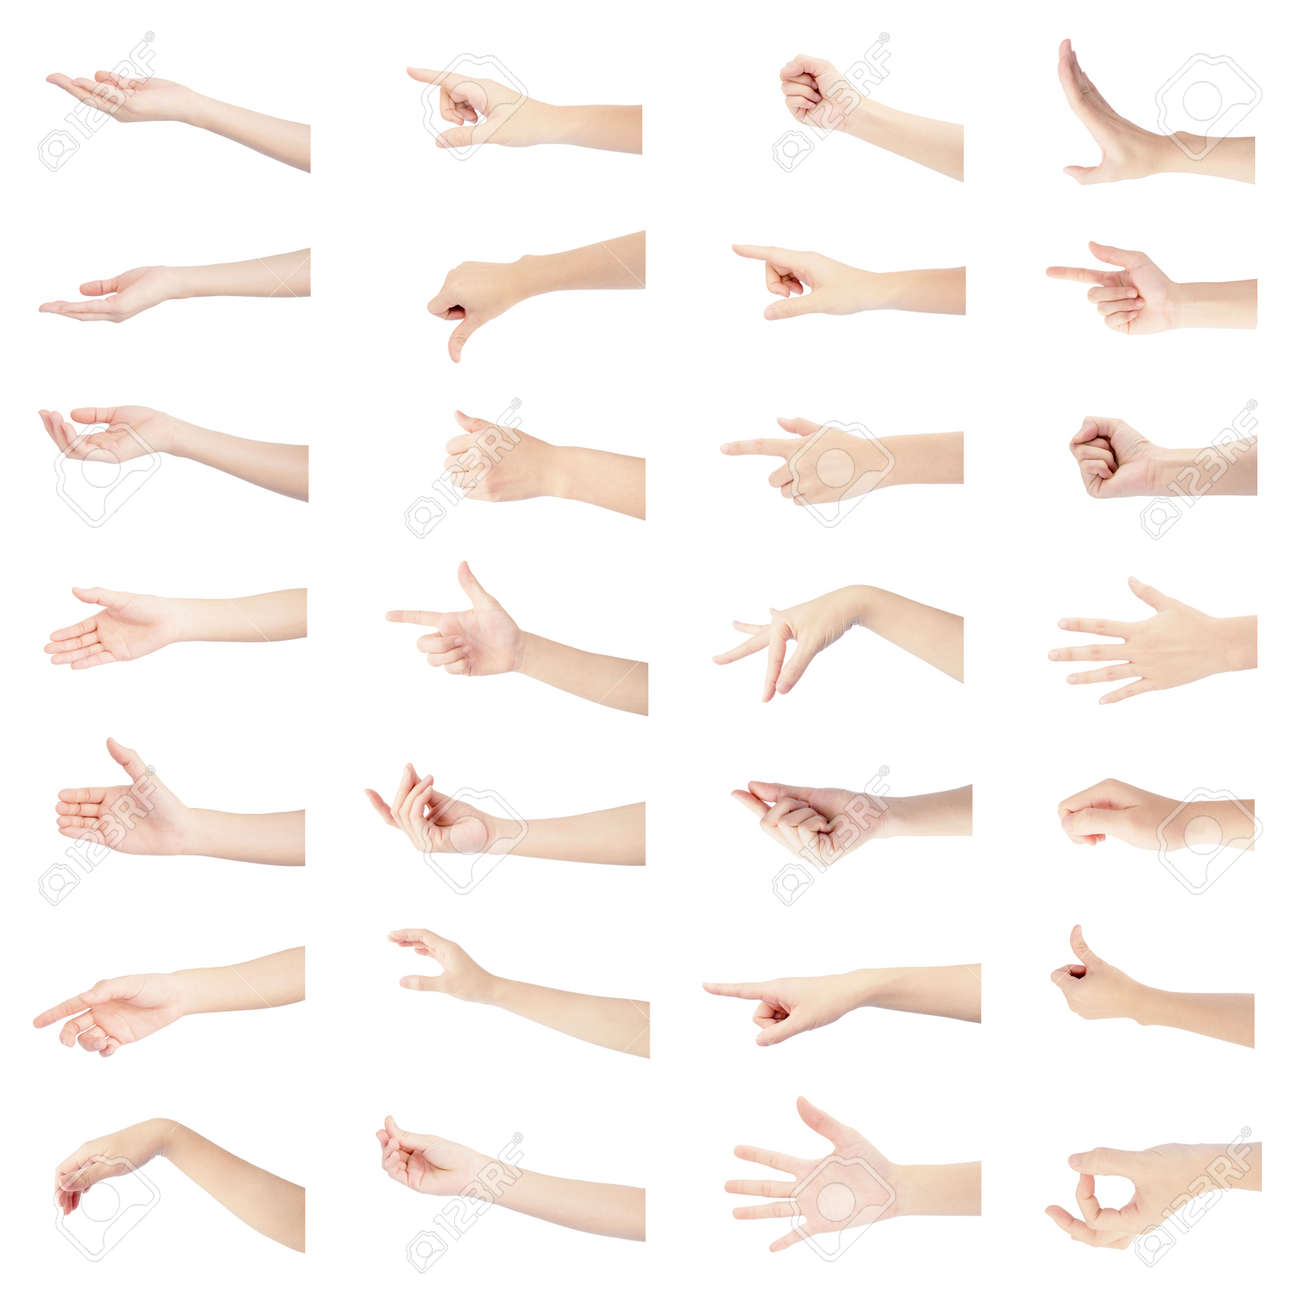 multiple collection right hand of woman in gestures and white skin isolated on white background - 159658791